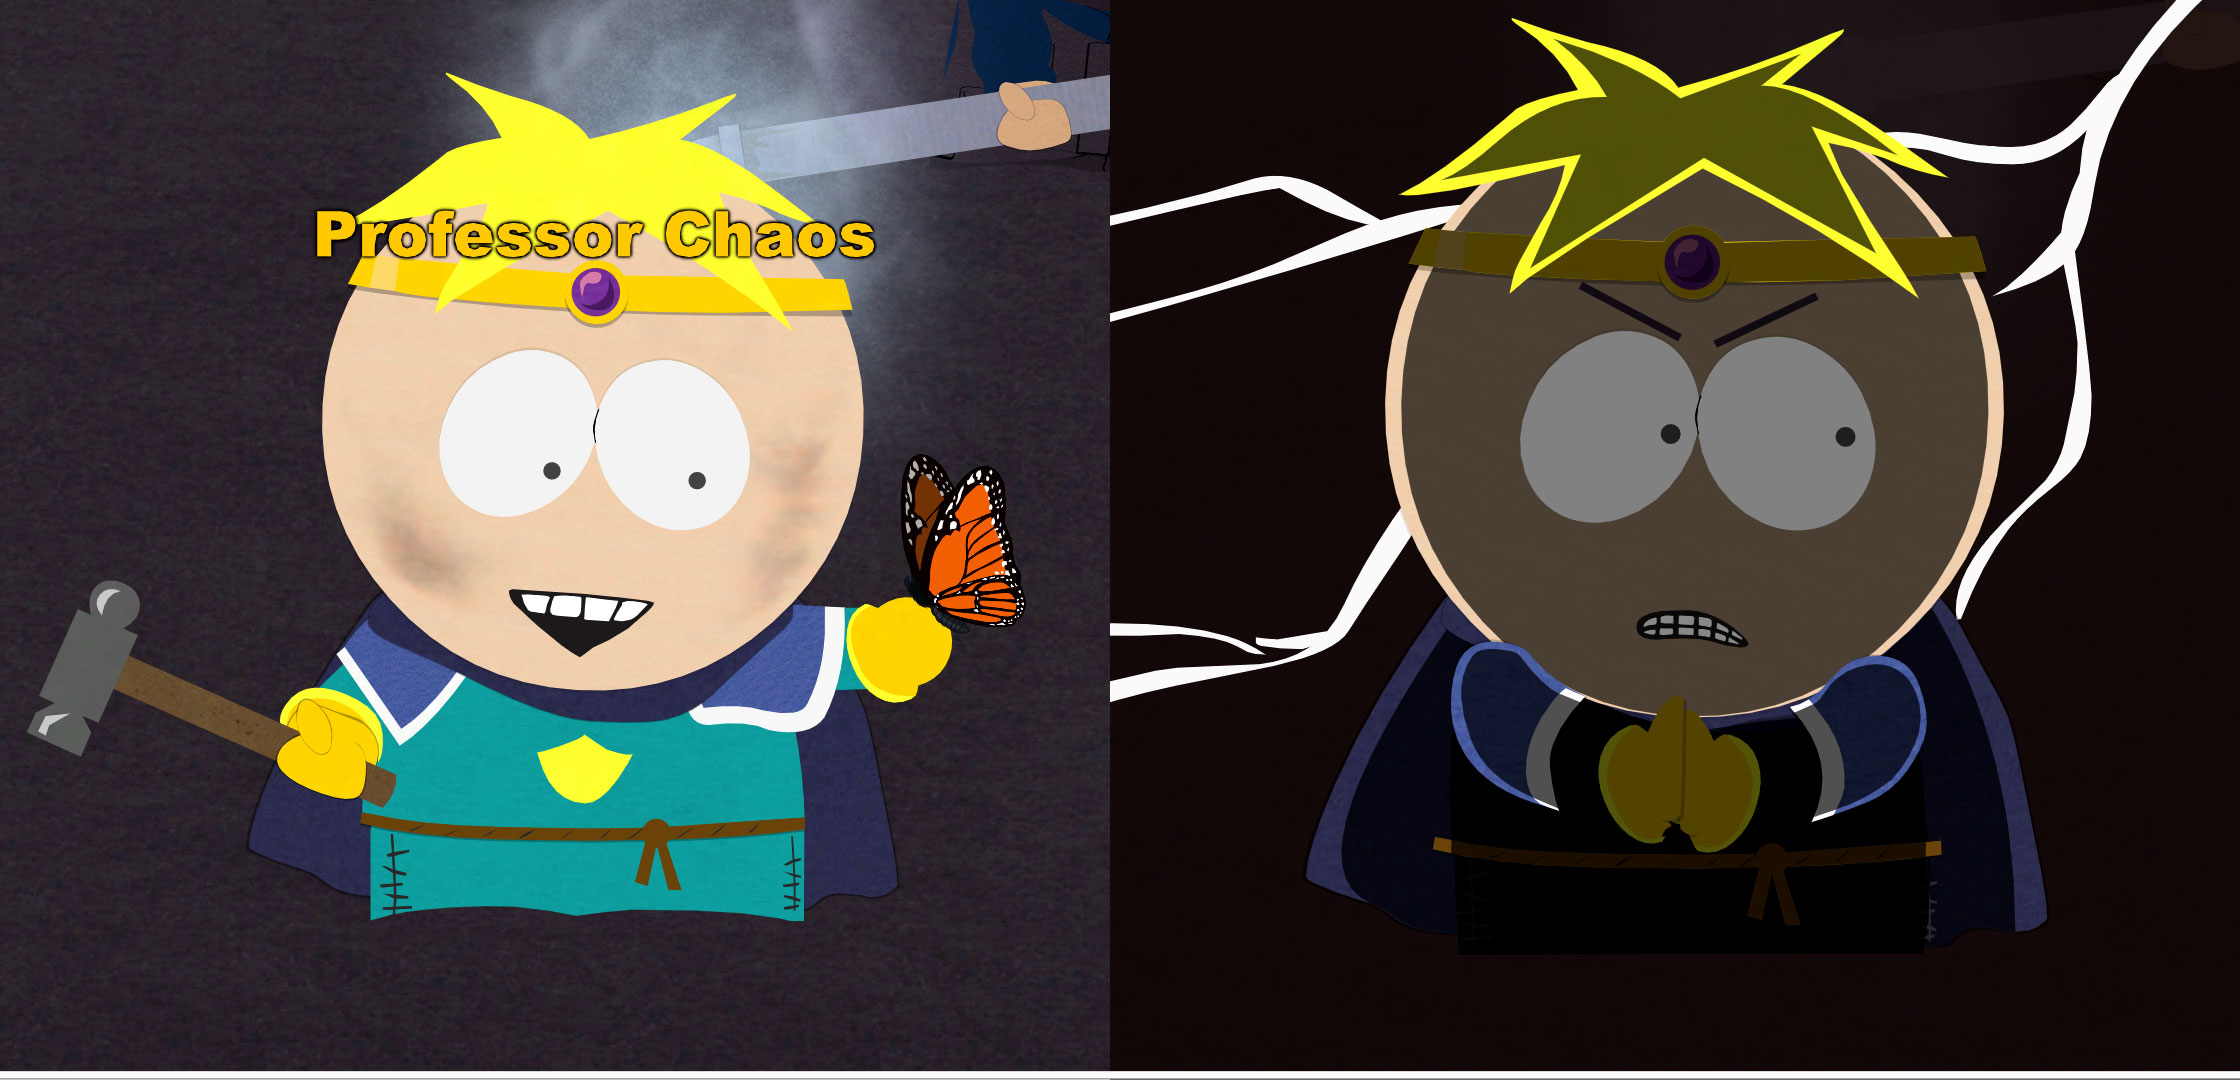 Butters Transform into Professor Chaos in Stick of Truth